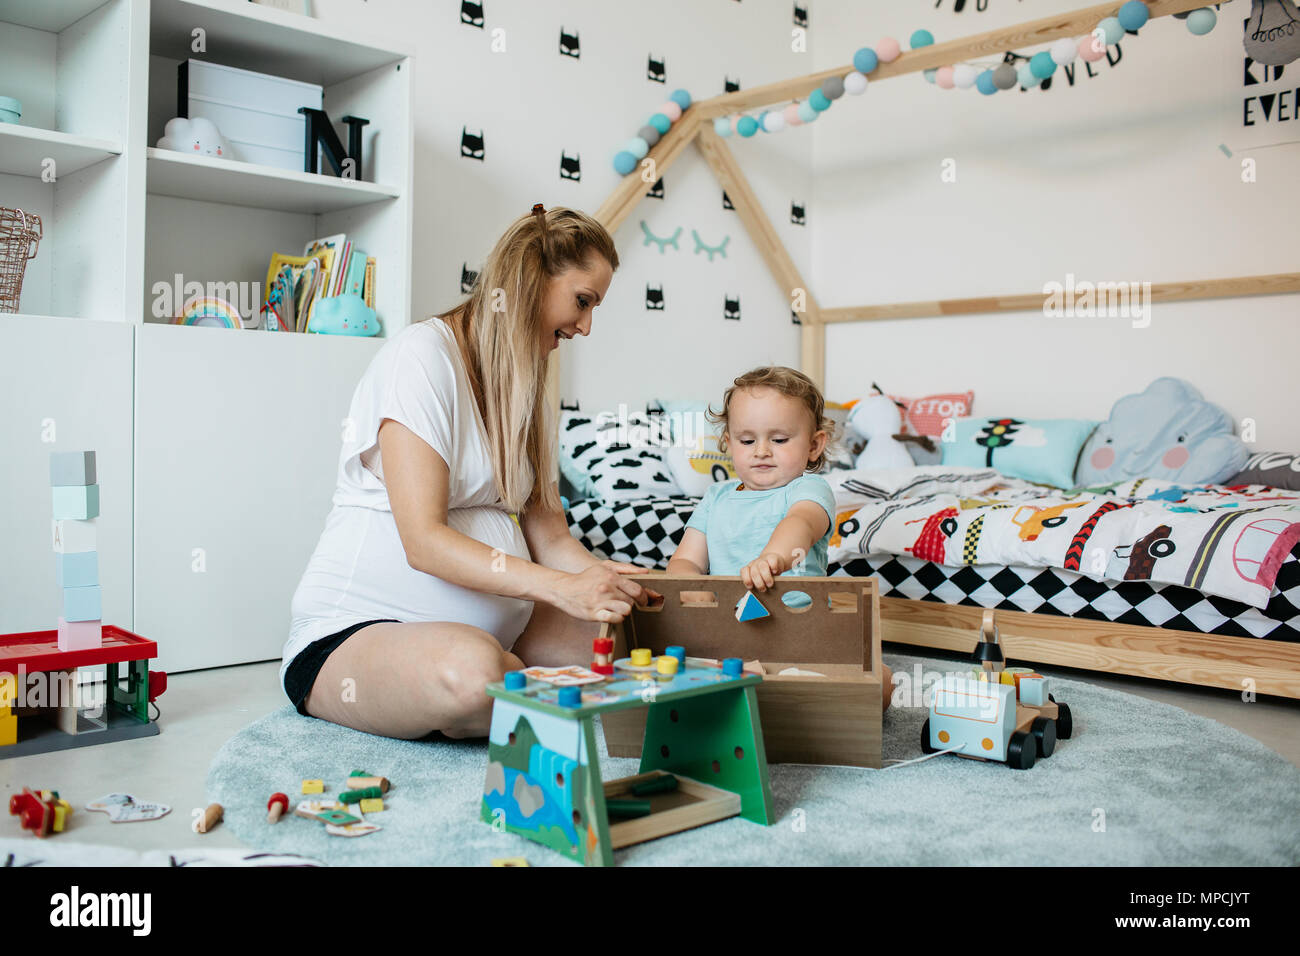 A mother teaches her child geometric shapes and colors. A little boy trying to sort geometric shapes and his mom encouraging him. - Stock Image